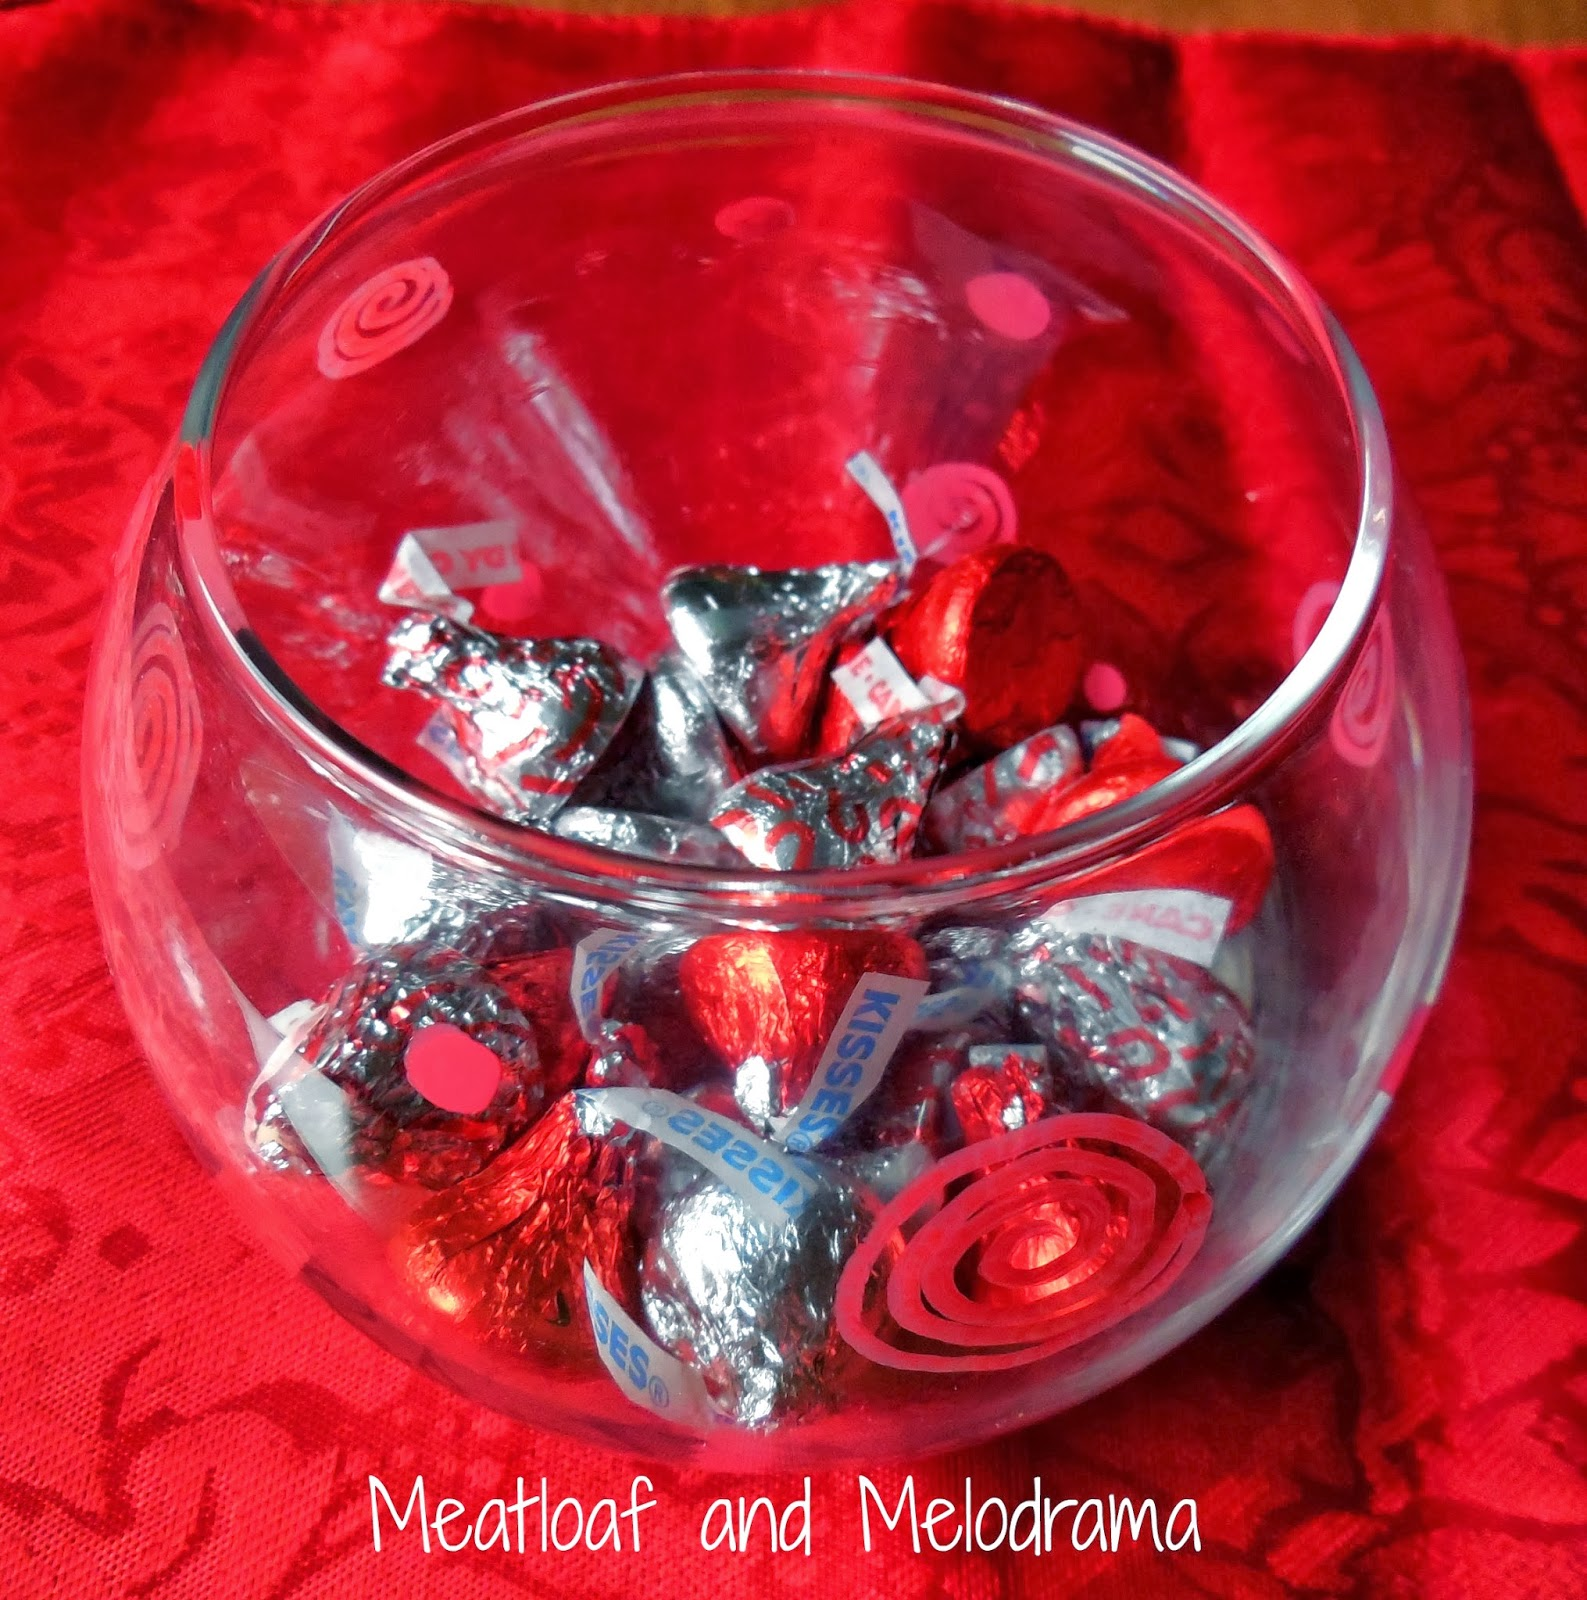 painted dollar store glass vase bowl red and white candy kisses